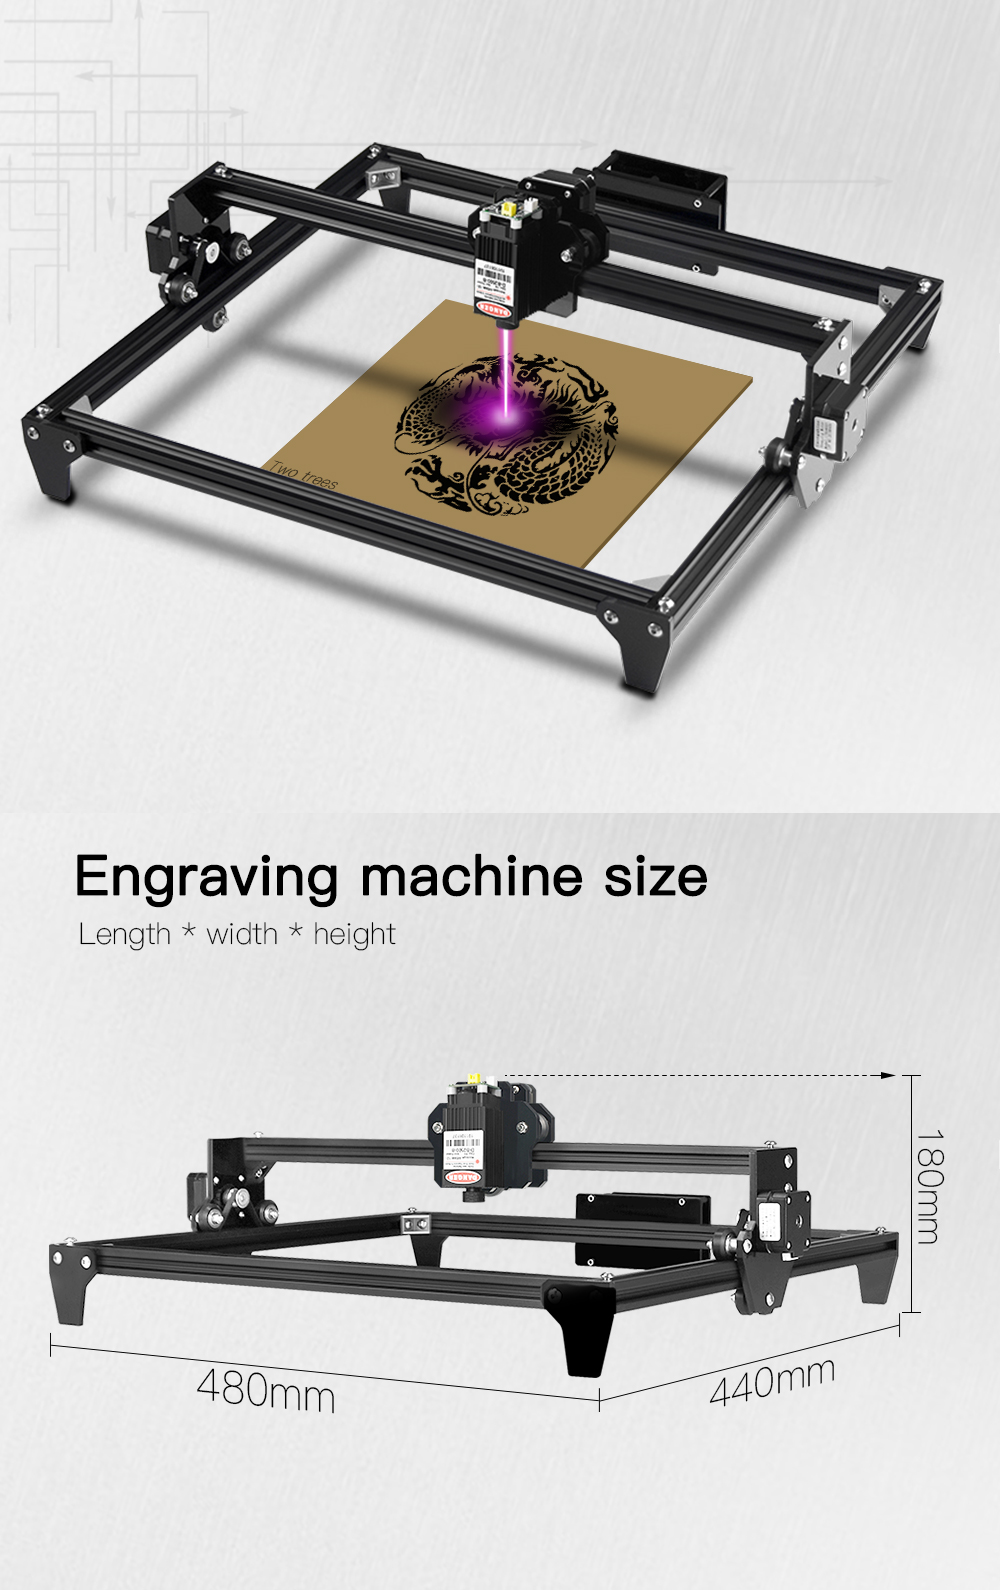 Laser Cutting and ENgraving Machine for Wood Cutting/Routing